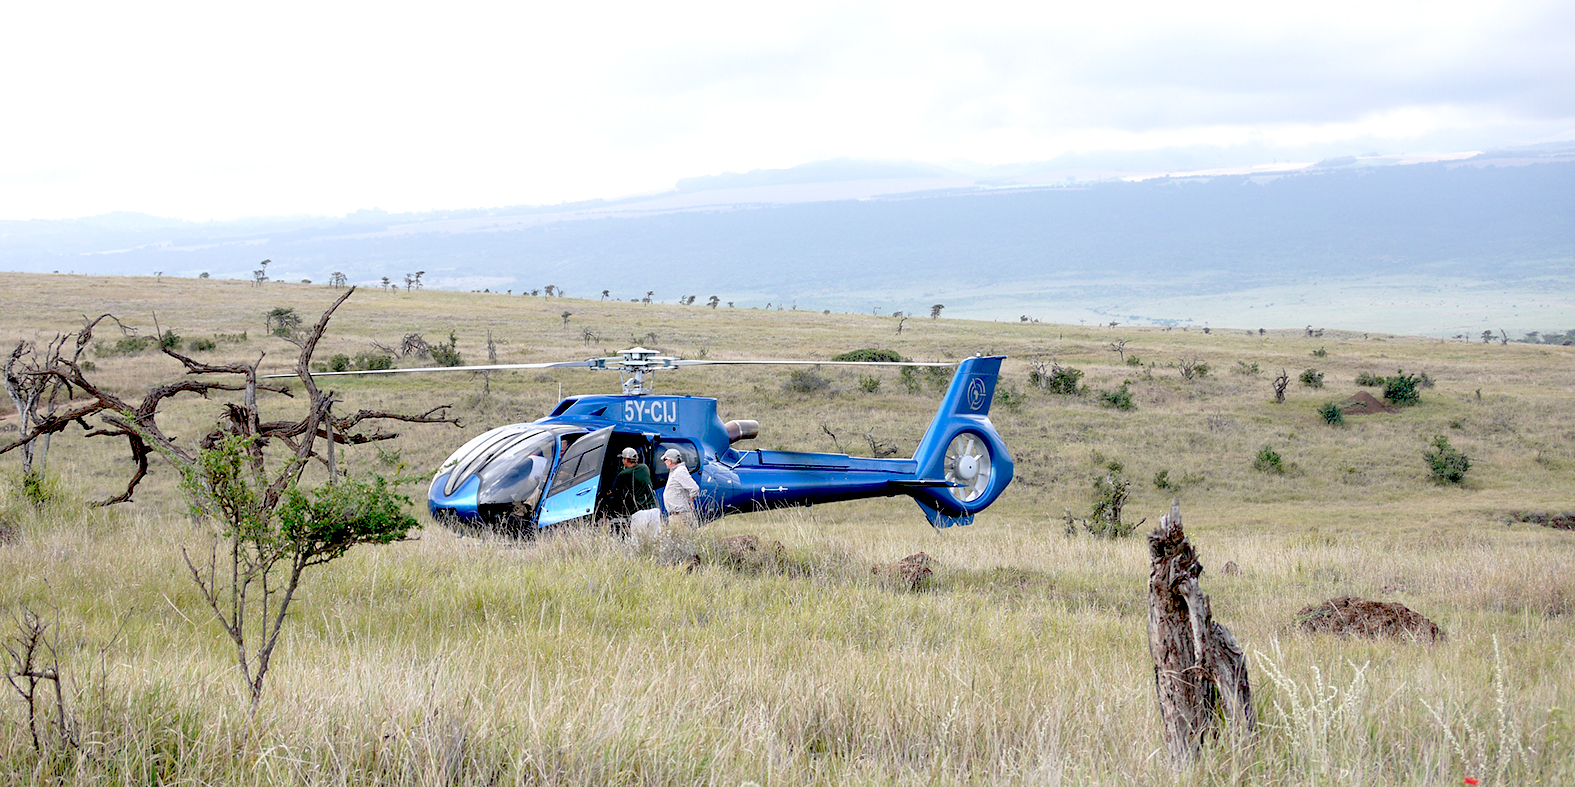 H130 helicopter at Lewa